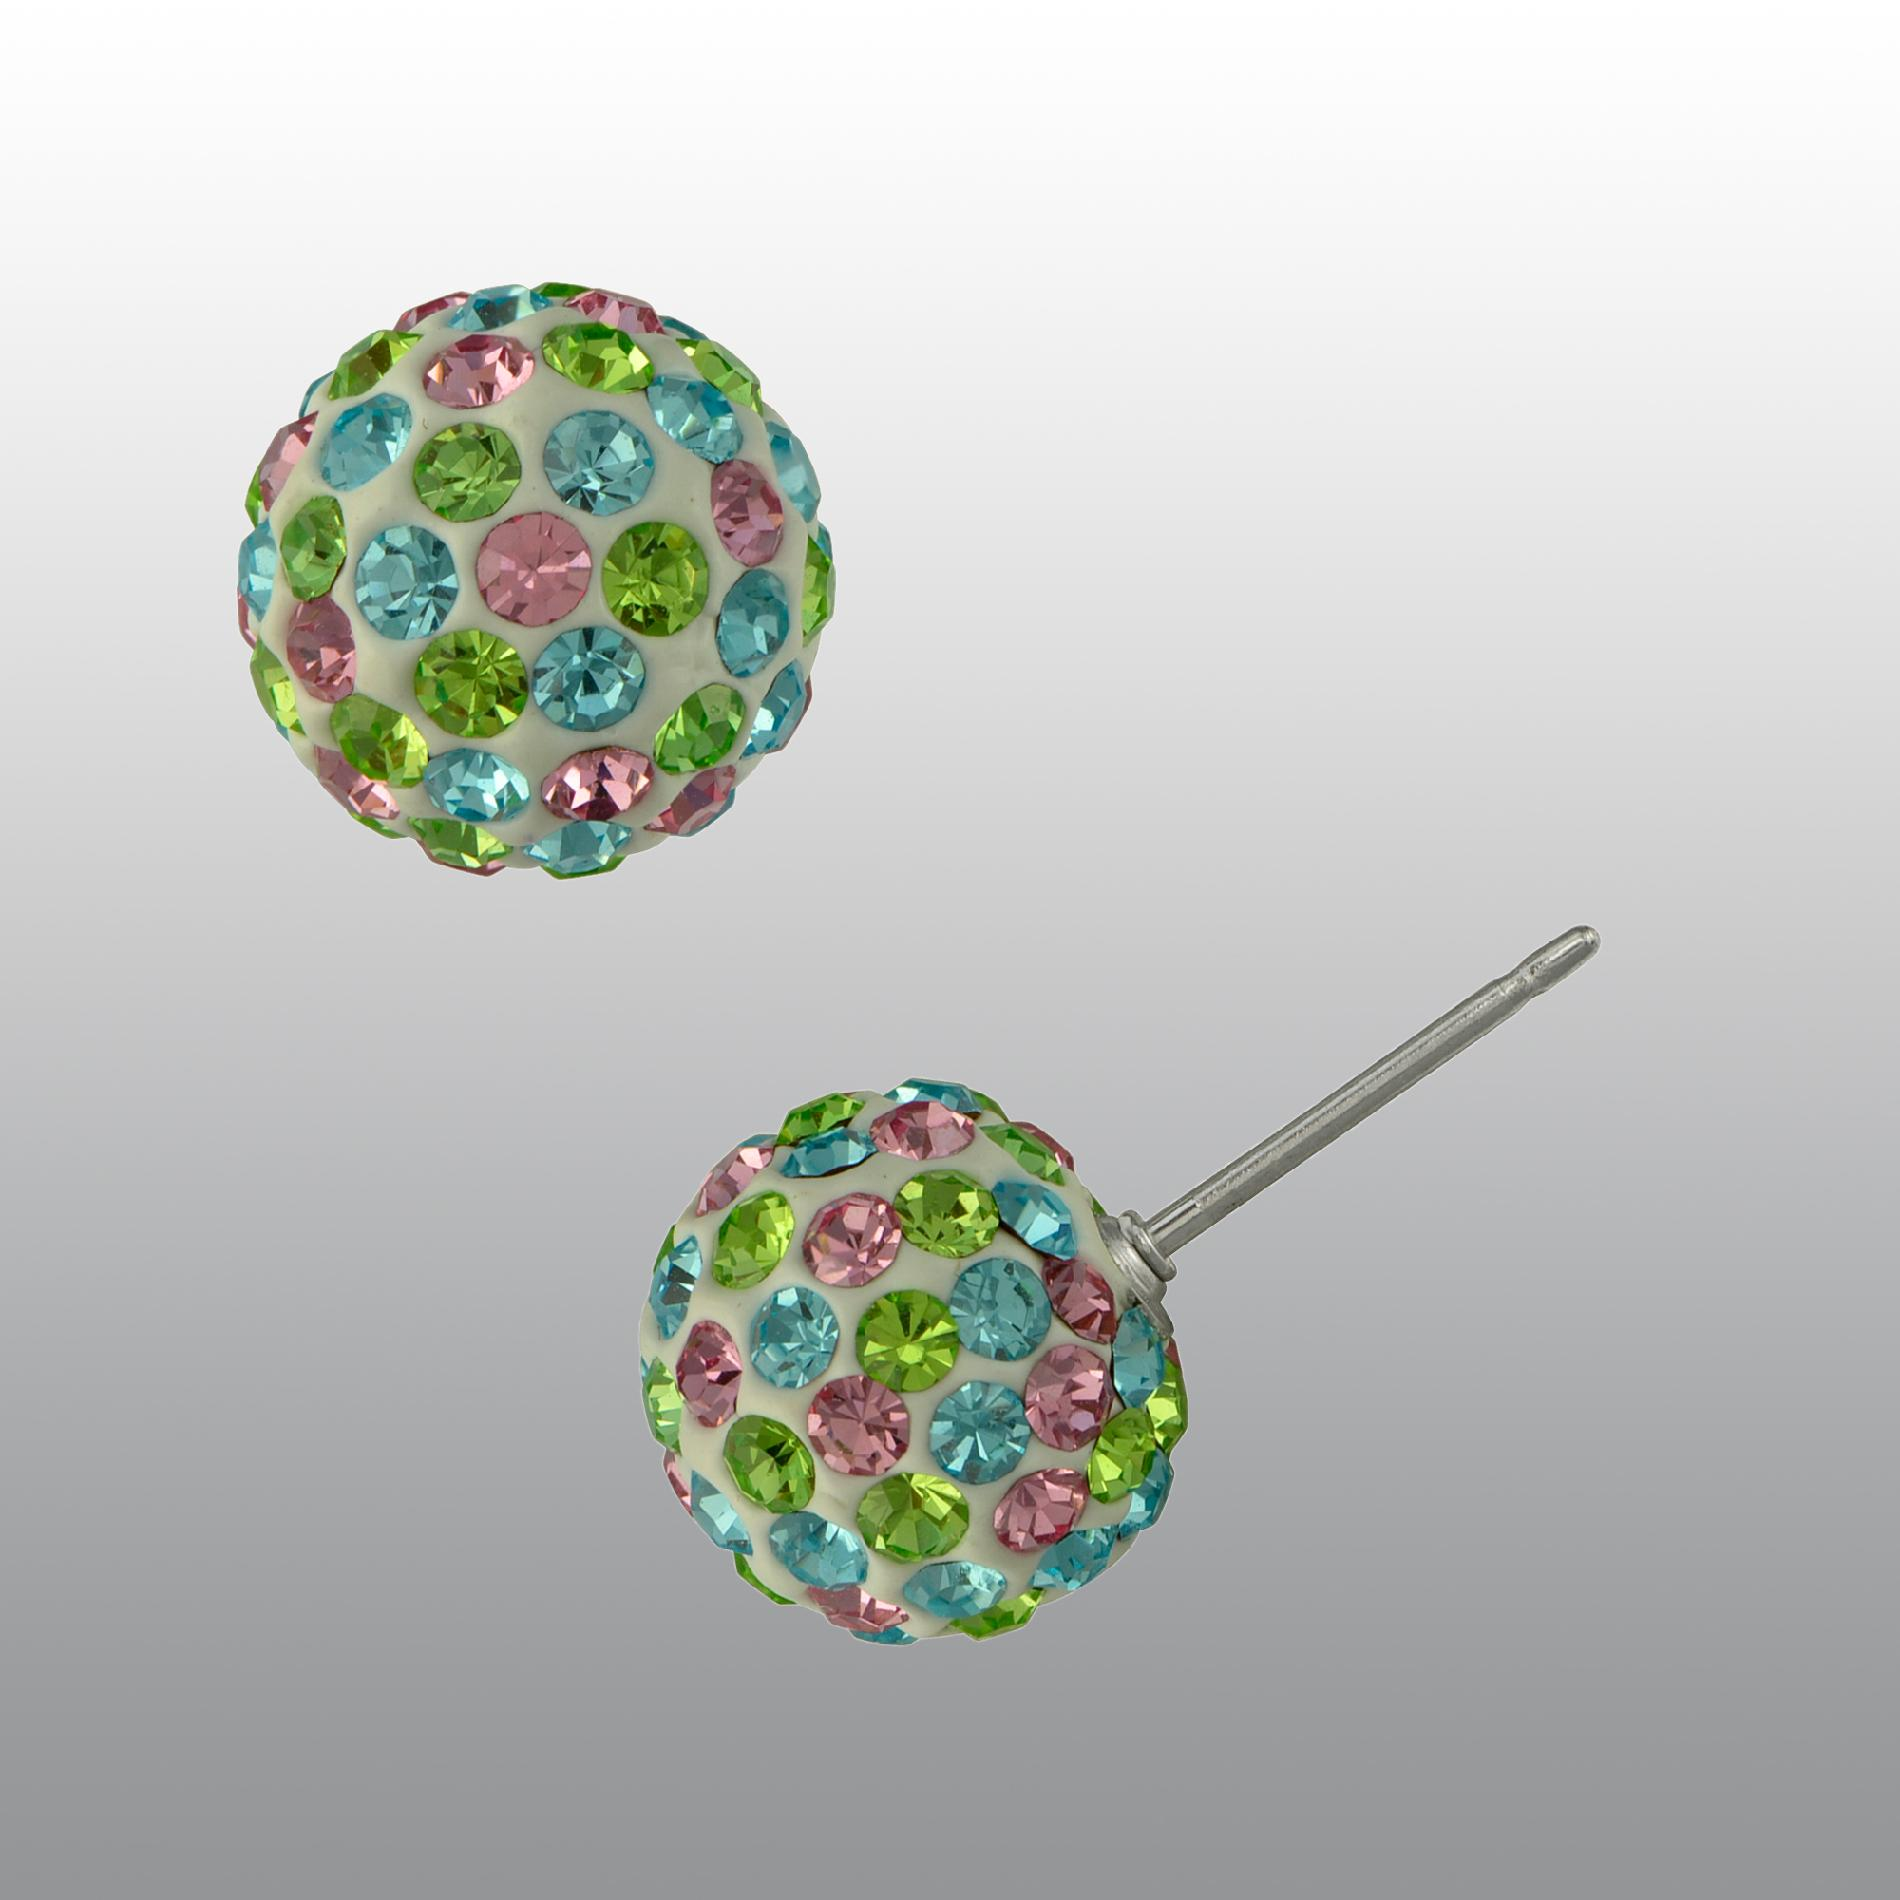 Pave Multi-color Crystal Ball Stud Earrings - Jewelry